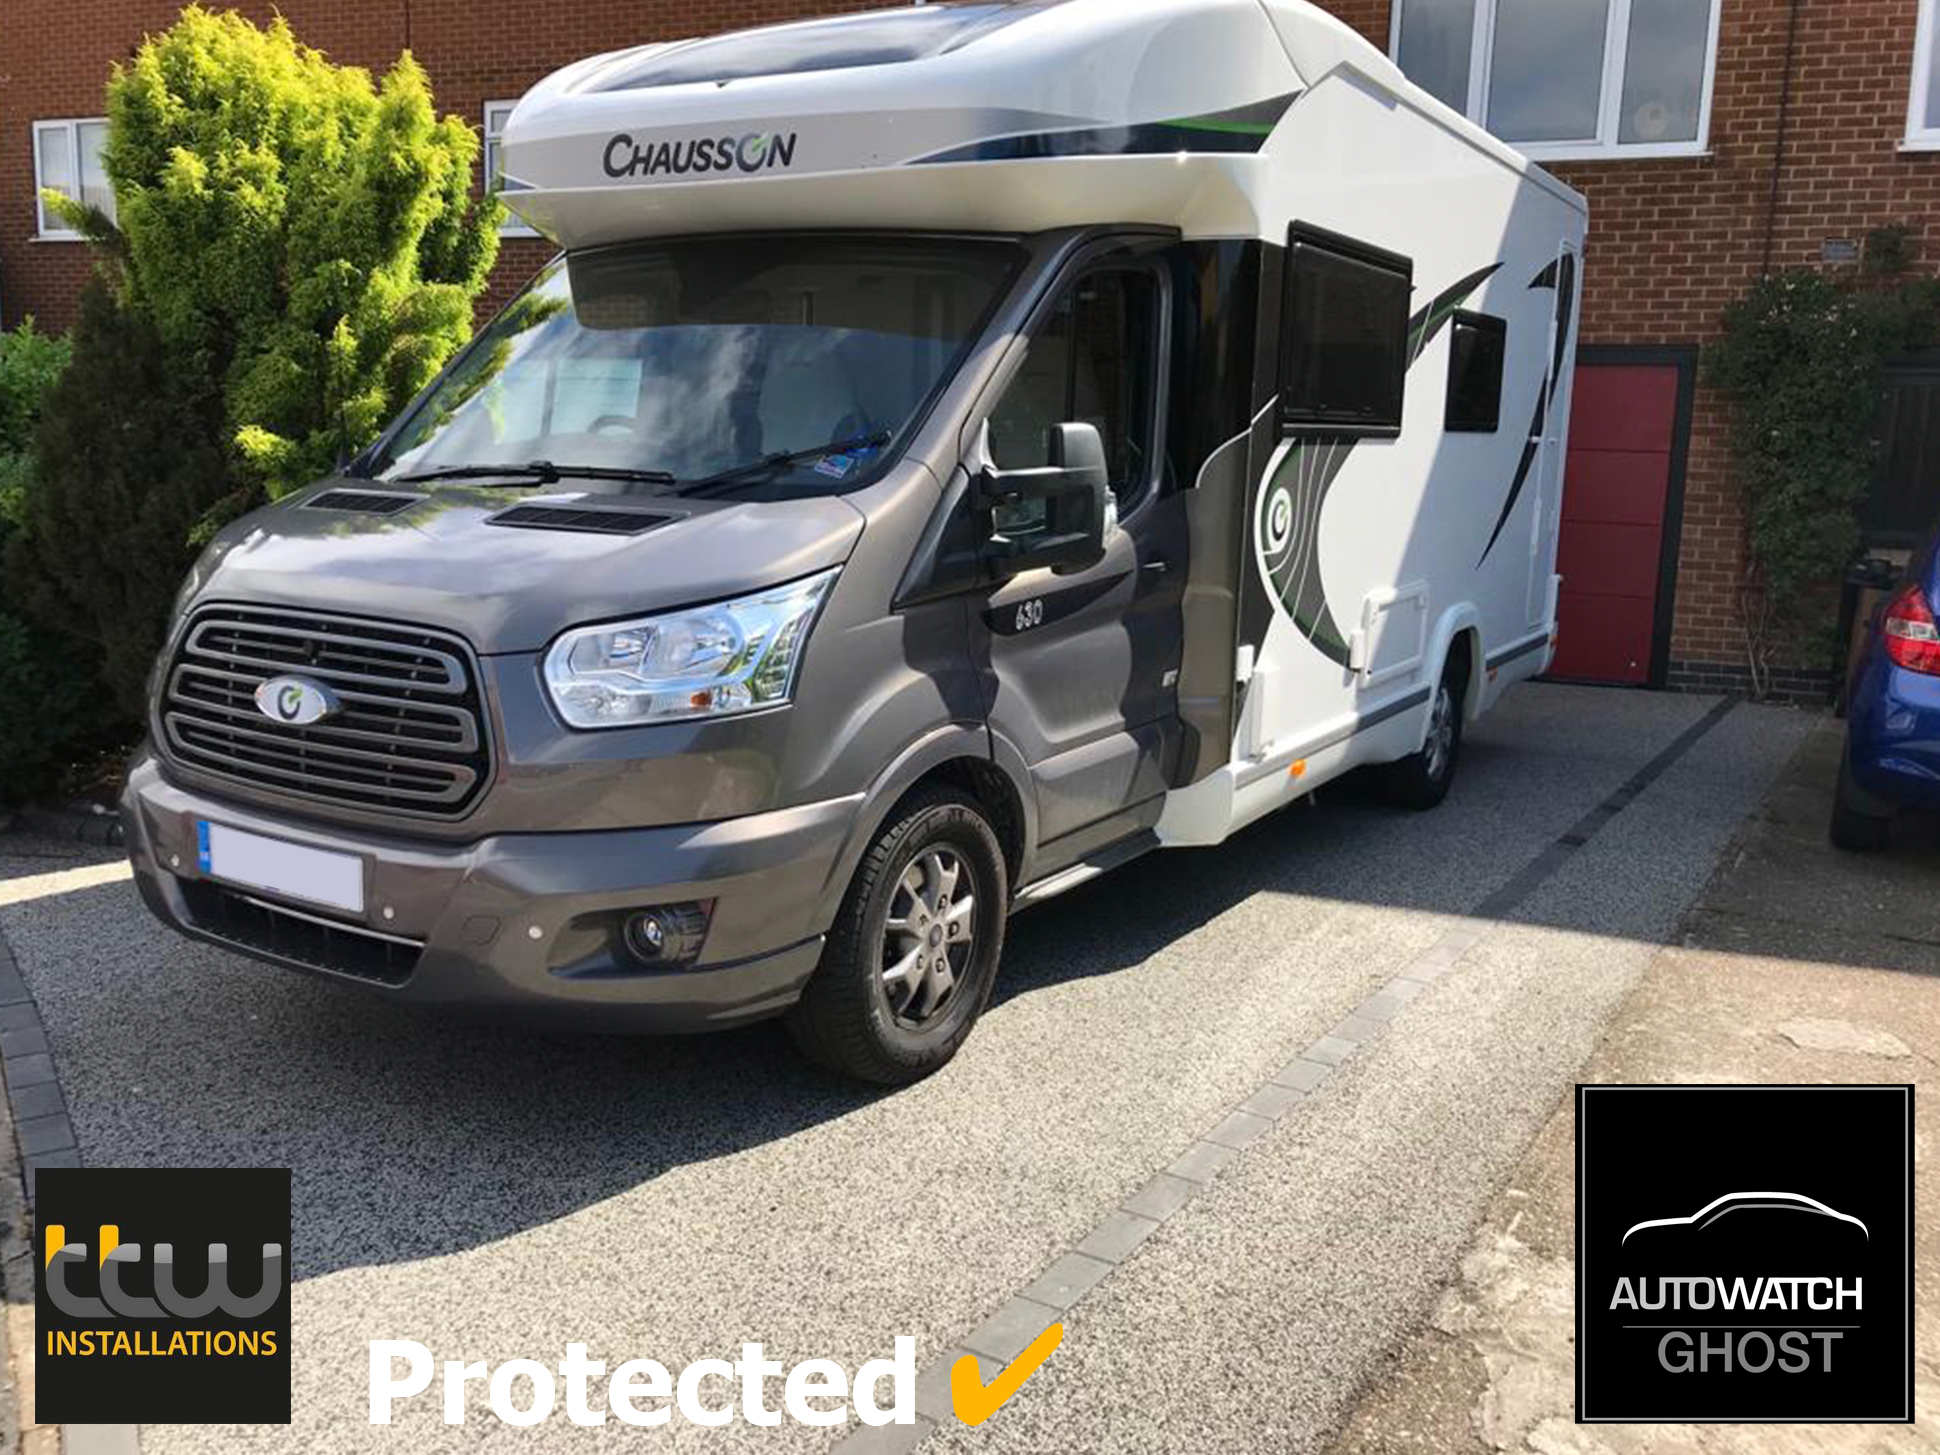 chausson-motorhome Autowatch Ghost 2 protected By TTW Installations